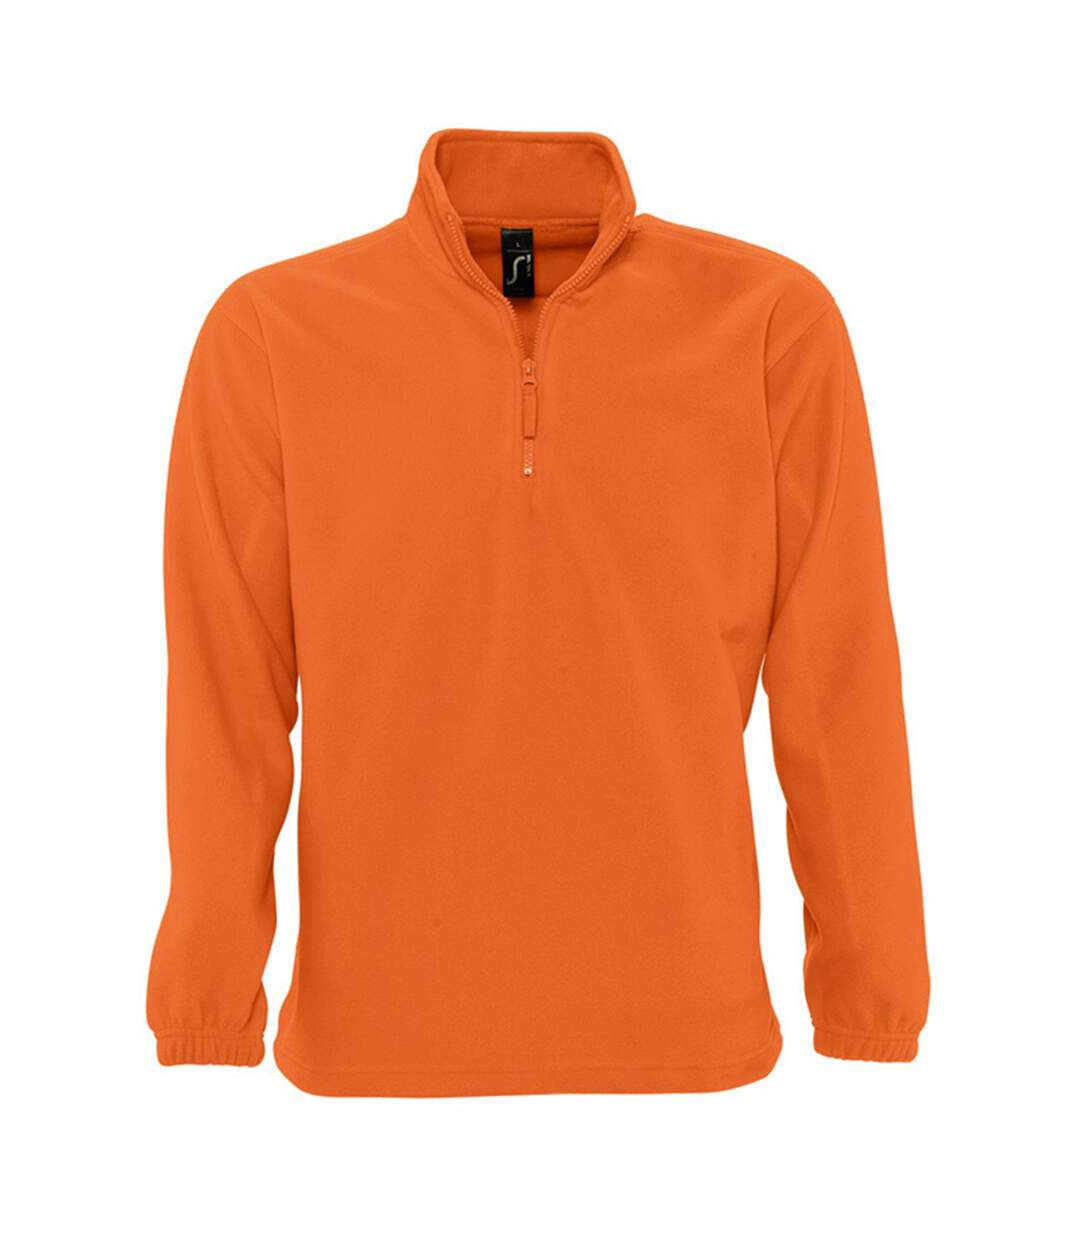 SOLS Ness Unisex Zip Neck Anti-Pill Fleece Top (Orange) - UTPC345